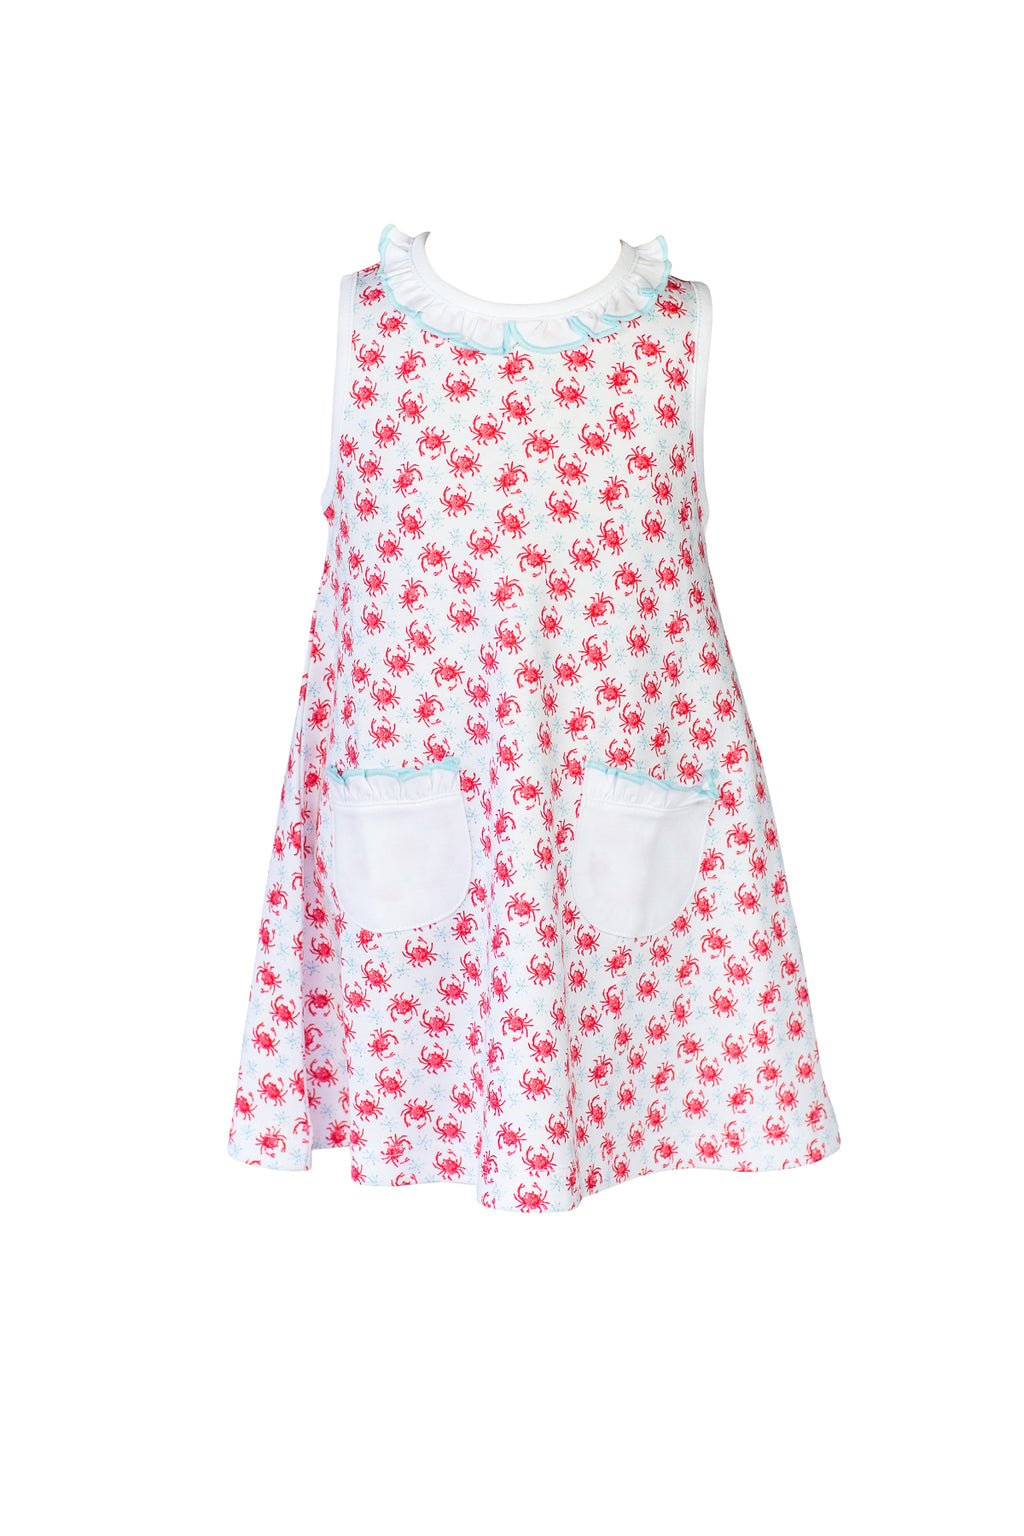 Pre-Order Crab - Girl A-line Dress - Born Childrens Boutique